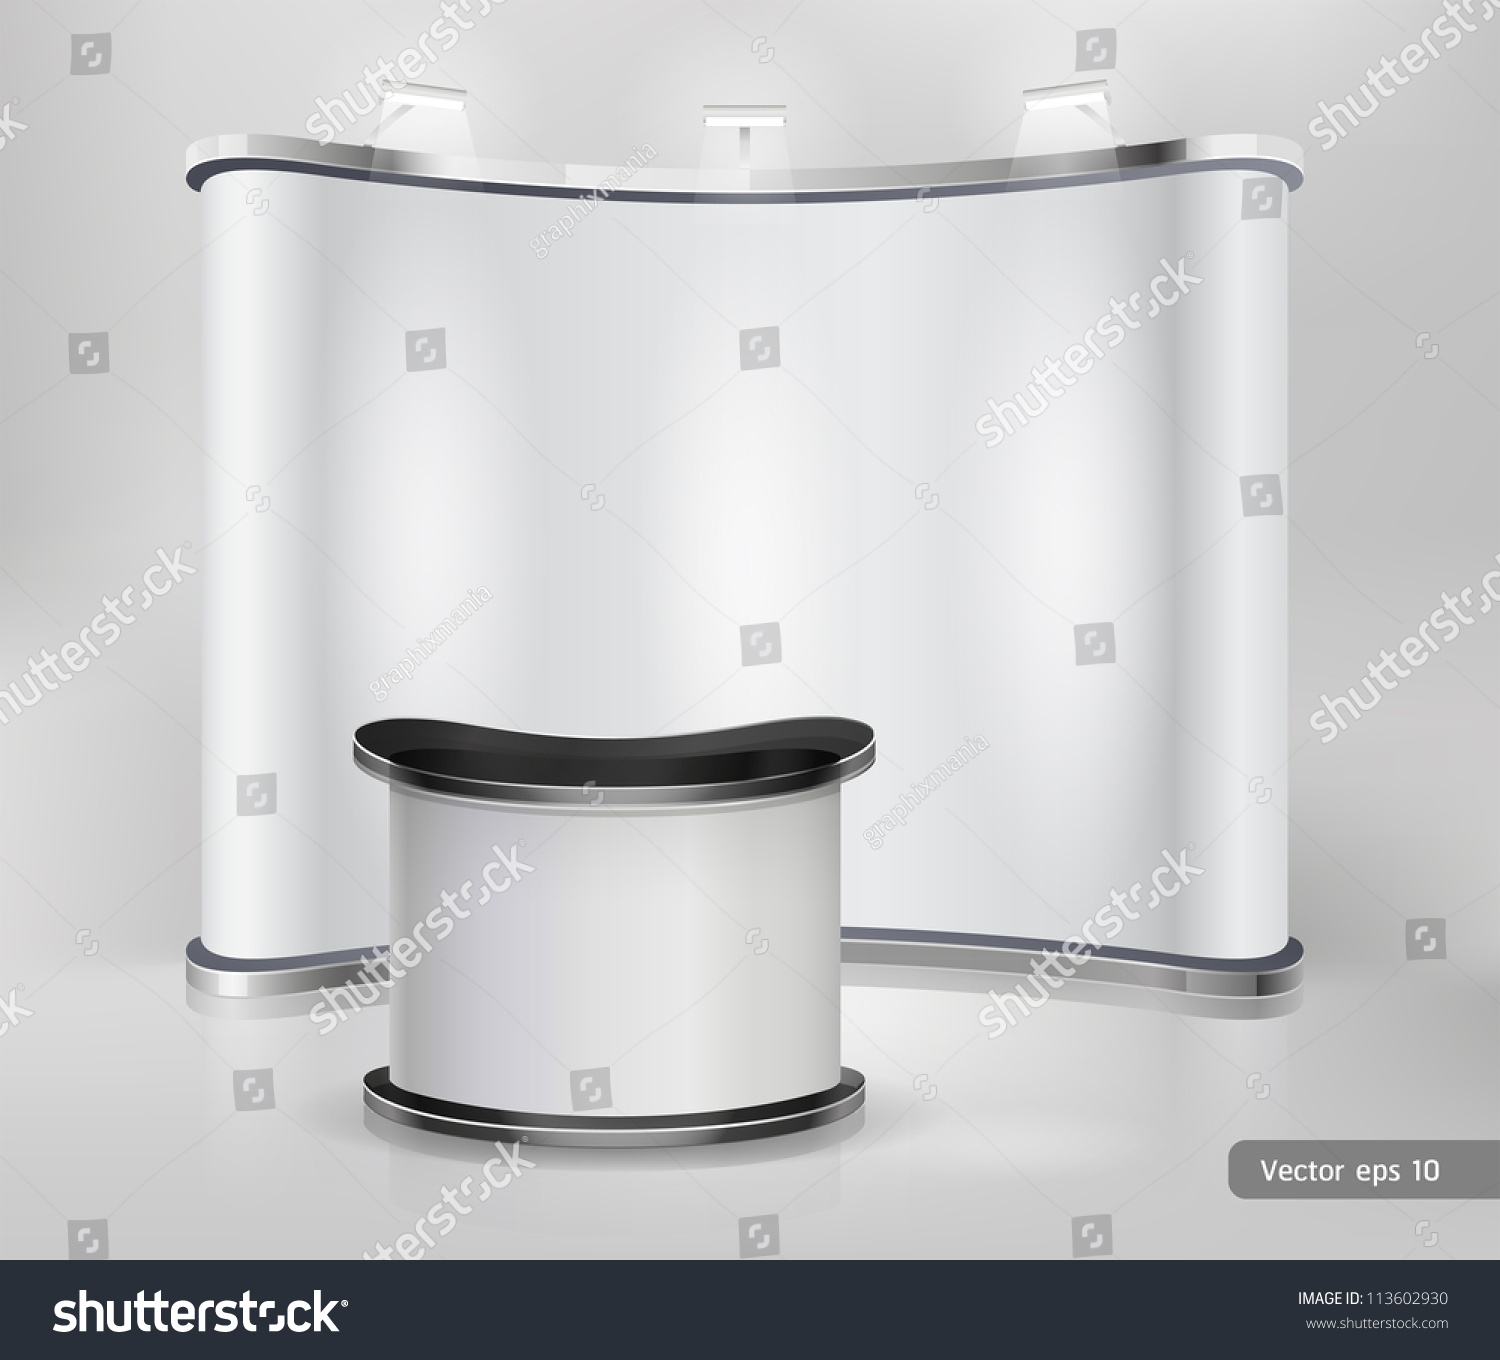 Exhibition Stand Vector : Trade exhibition stand display vector stock